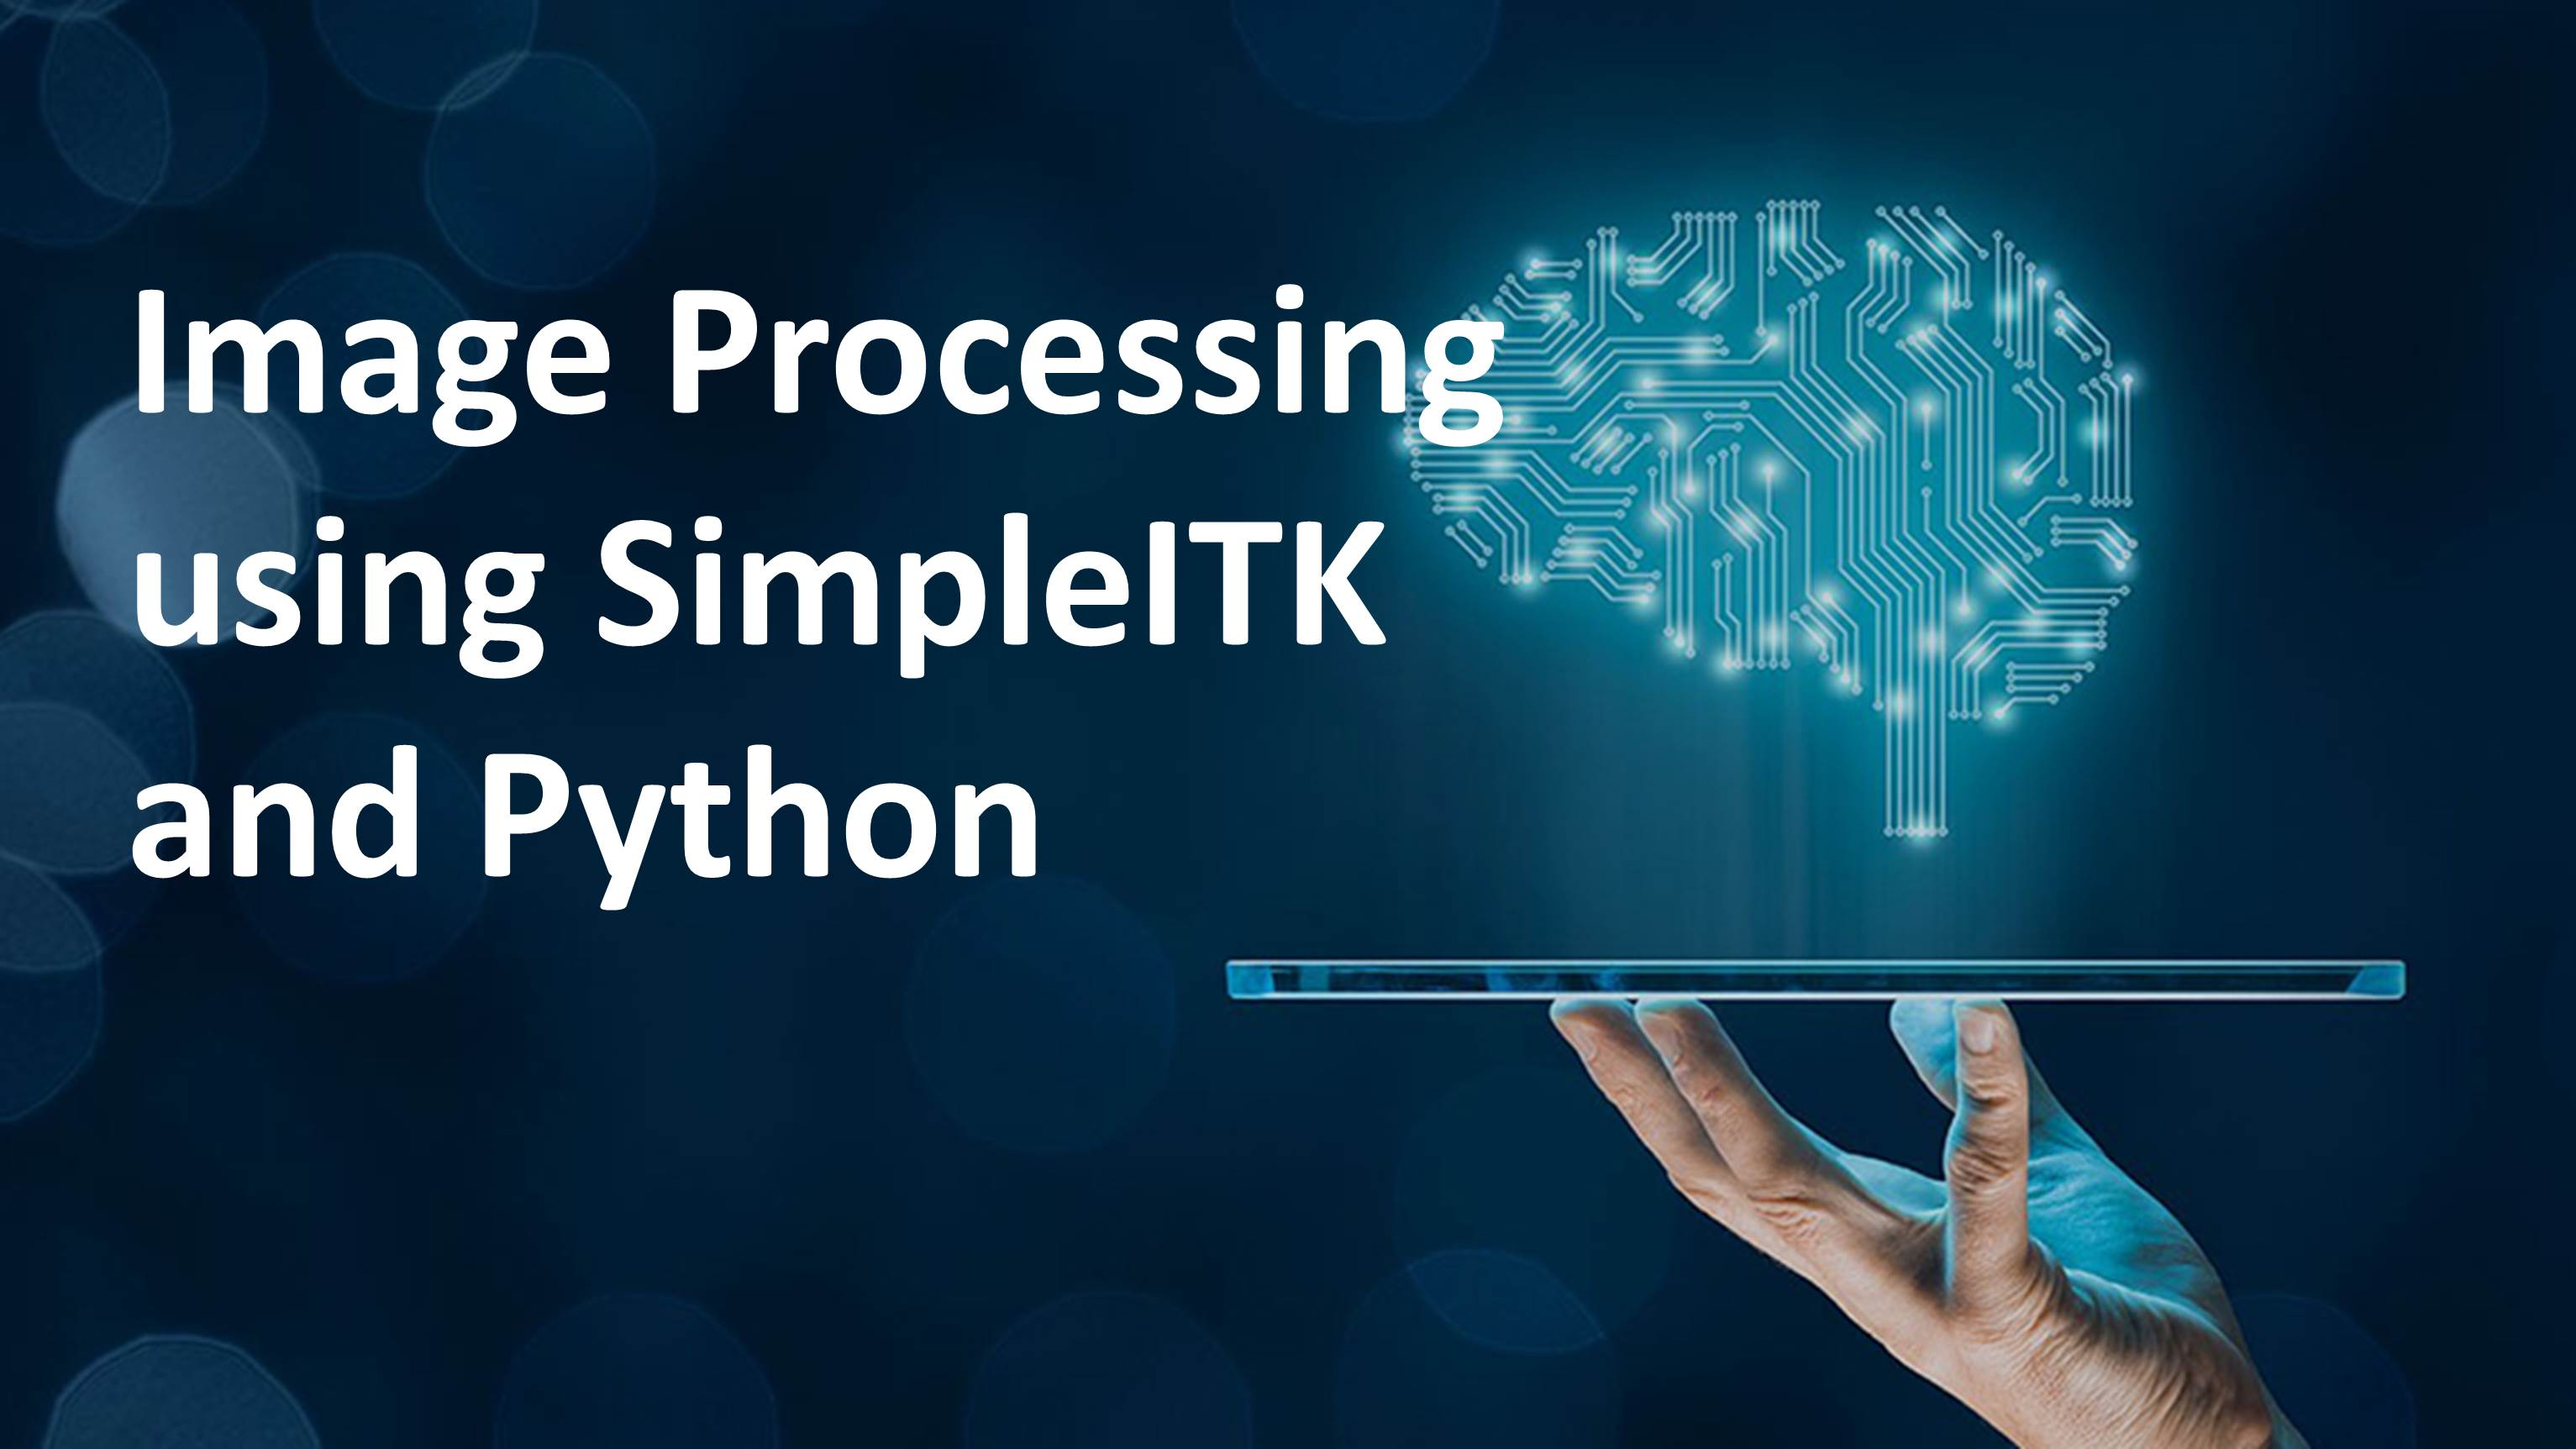 Image Processing using SimpleITK and Python